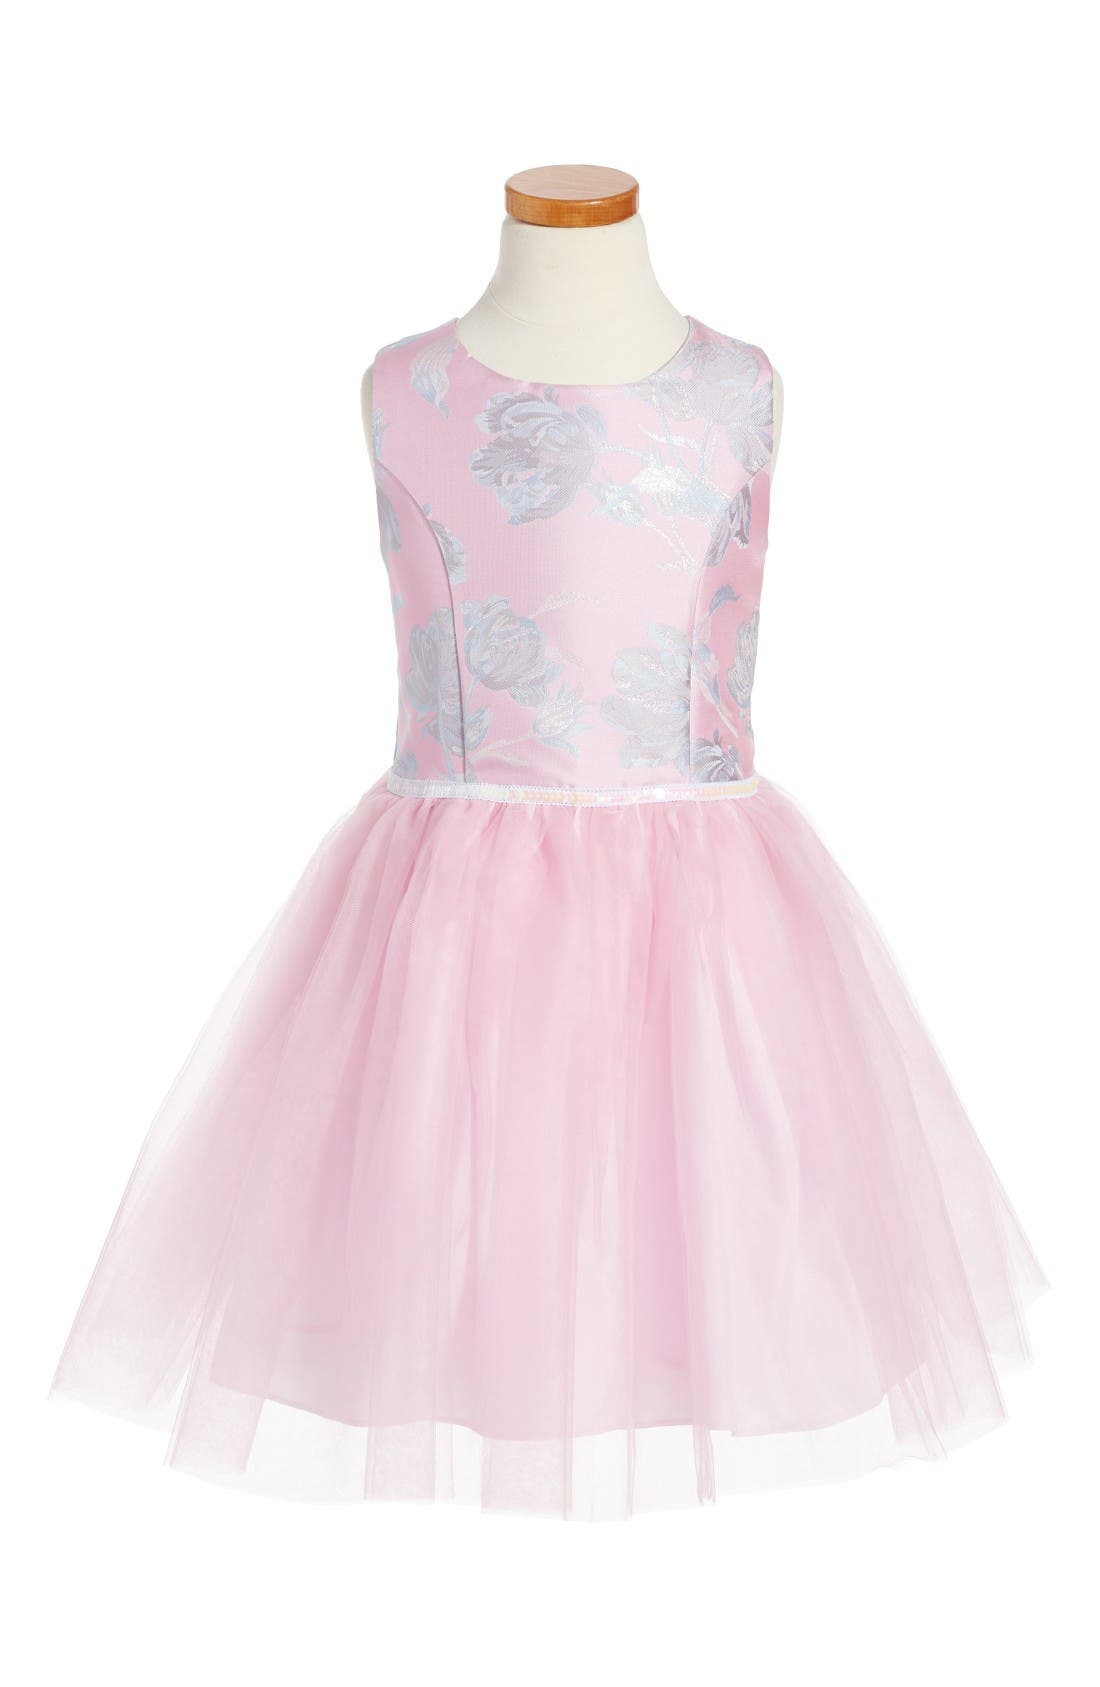 PIPPA & JULIE Floral Brocade Ballerina Dress